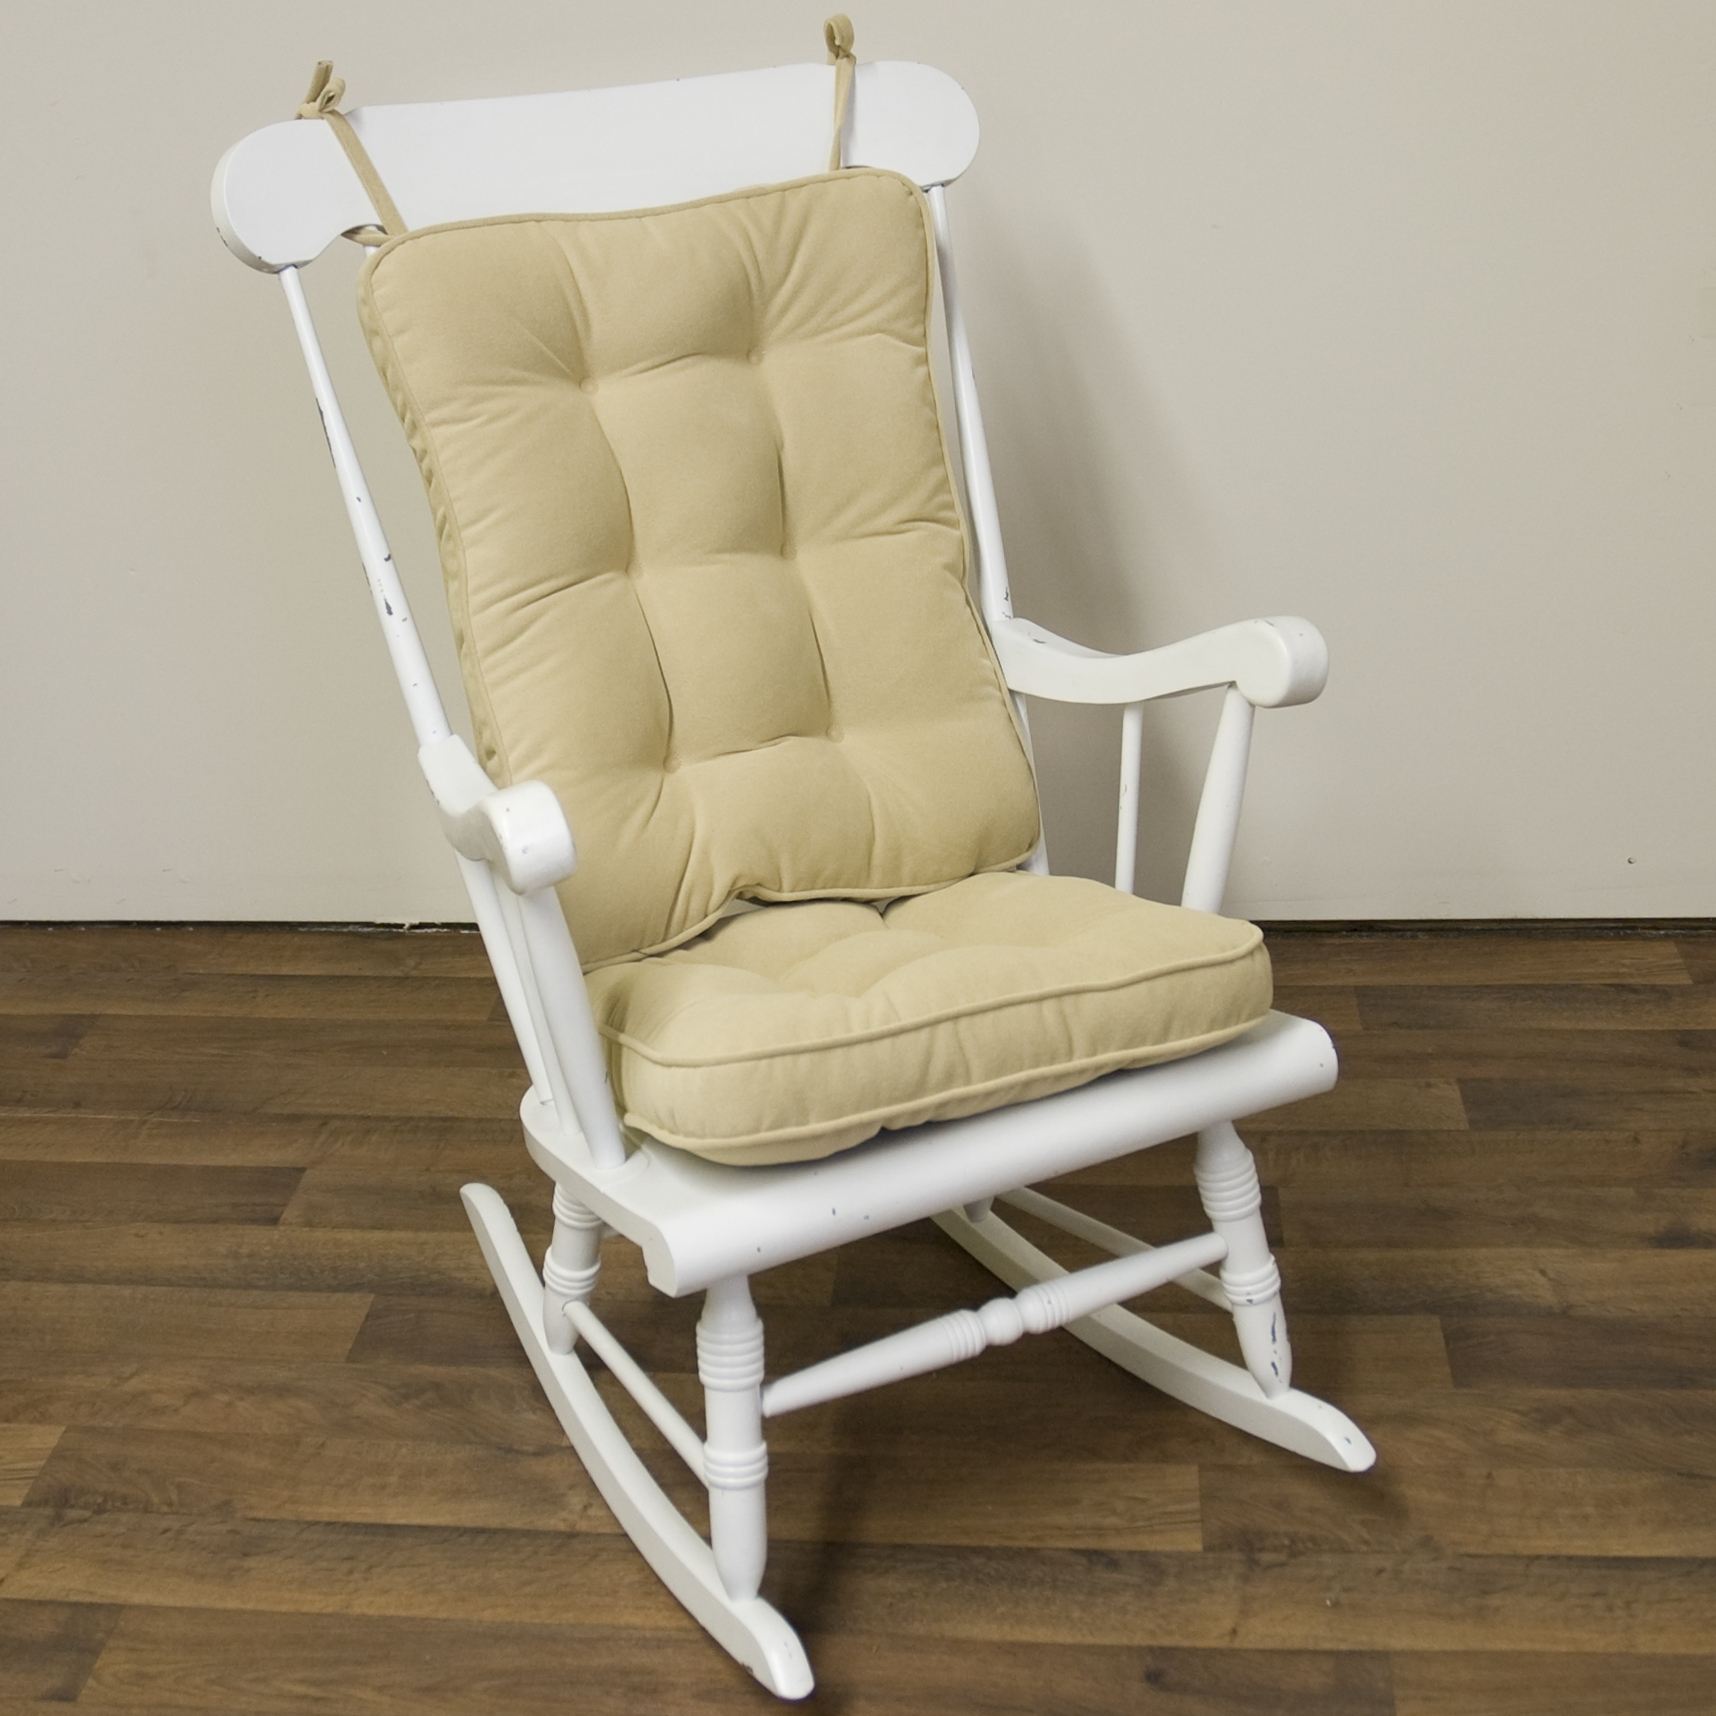 Lowes Rocking Chairs Within 2017 Livingroom : Lowes White Wooden Rocking Chairs Outdoor Wood Chair (View 13 of 15)